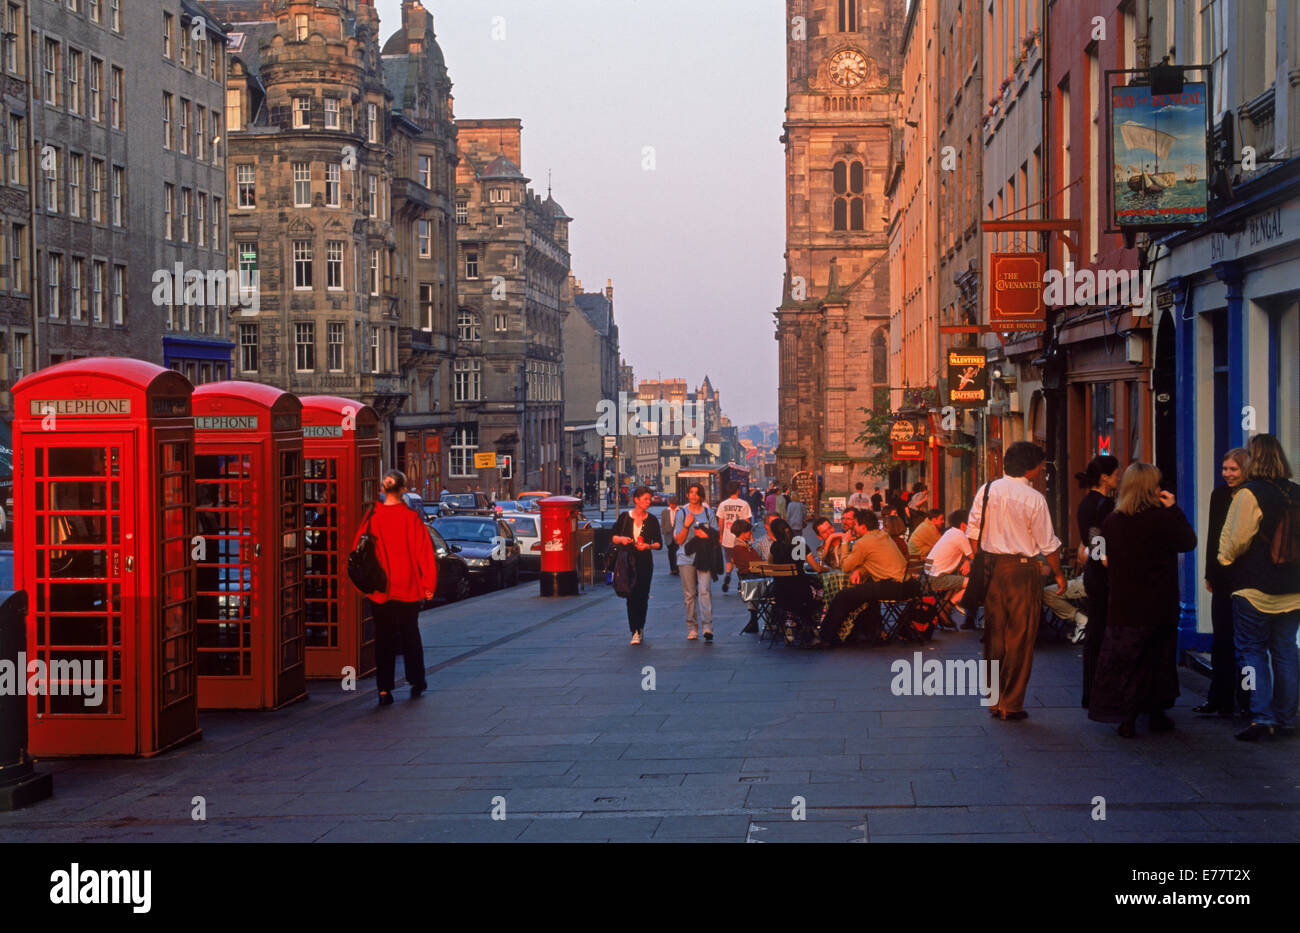 Telephone booths, pedestrians and pubs along The Royal Mile in Edinburgh in sunset light - Stock Image